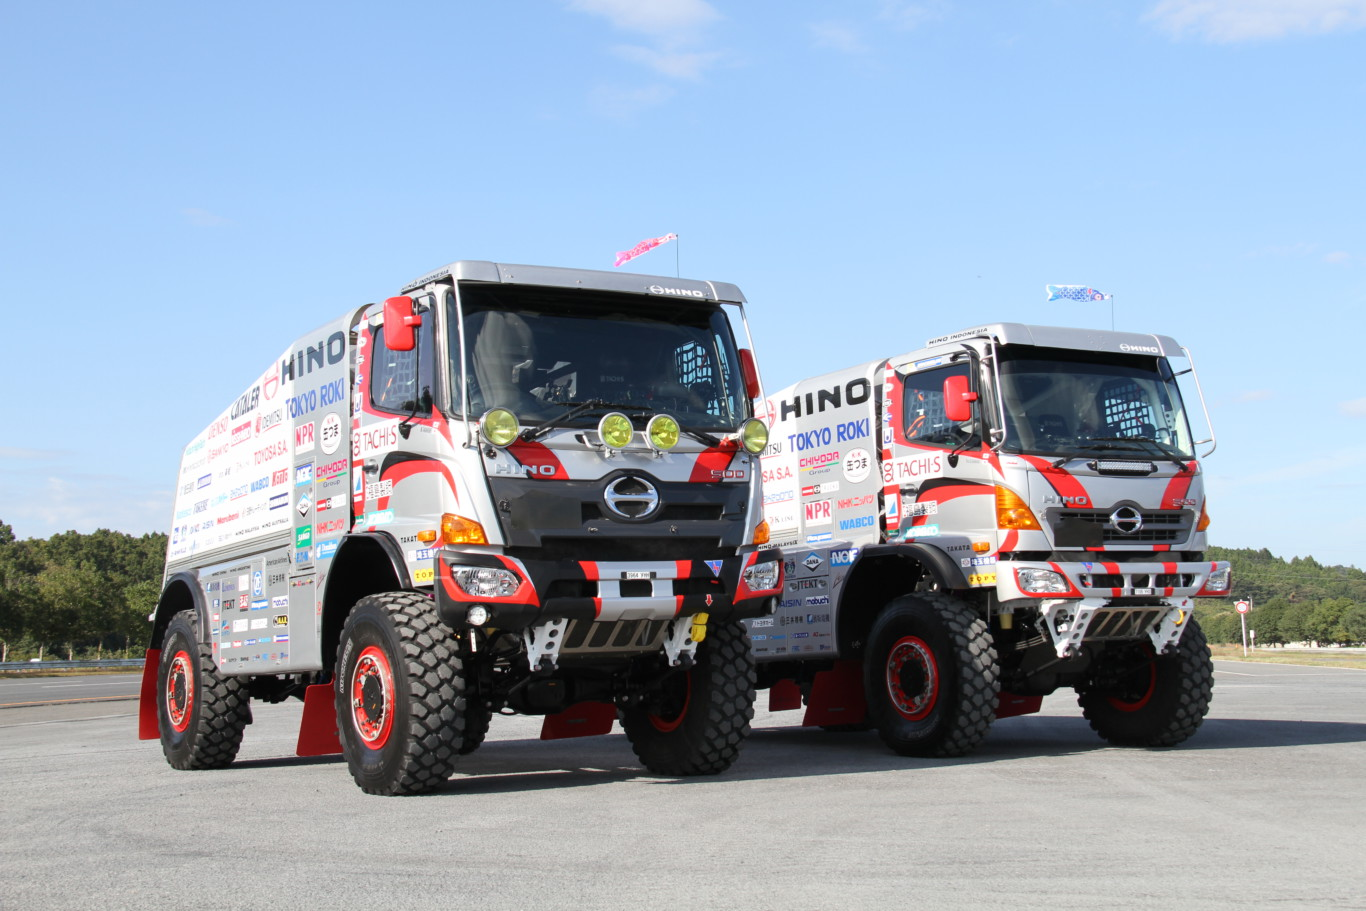 Hino 500 Series >> Hino aims to continue reliability record in its 26th Dakar Rally - Truck and Freight Information ...